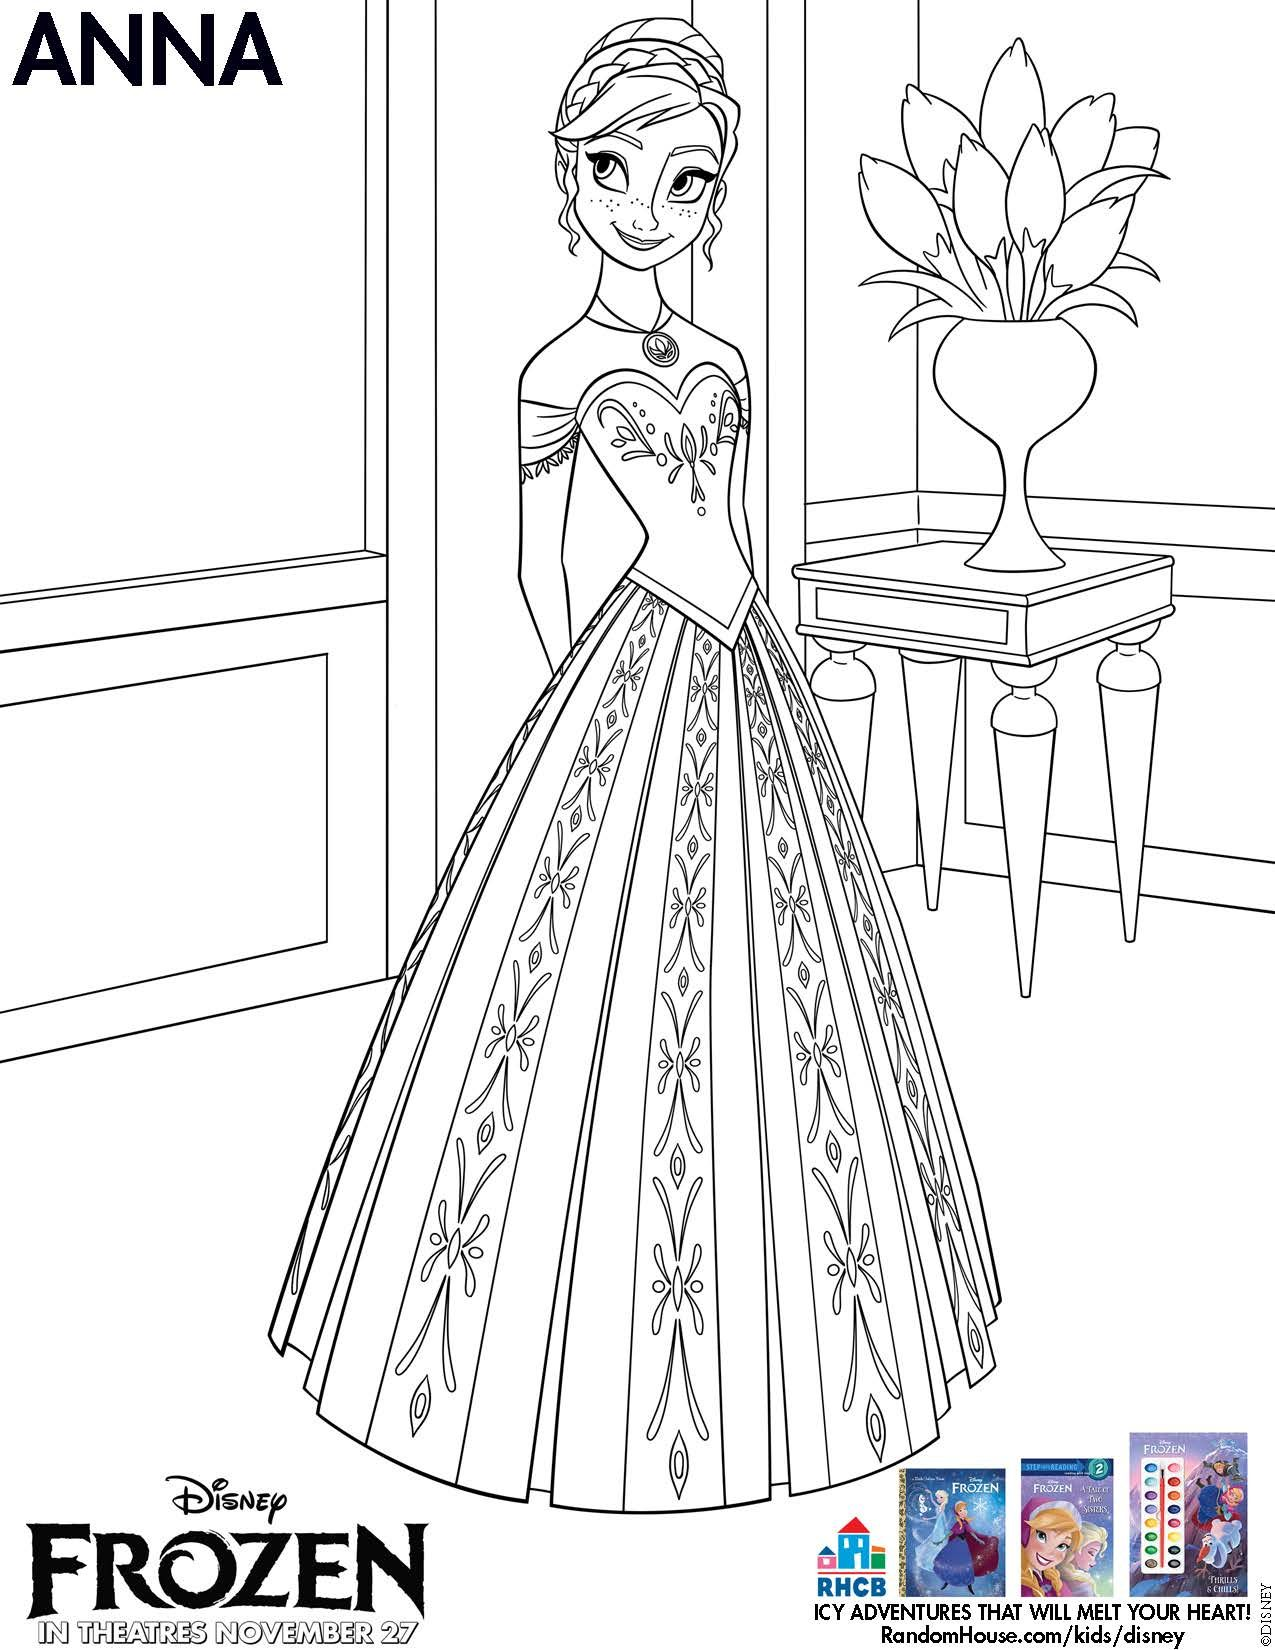 Disney Frozen Printable Coloring Pages